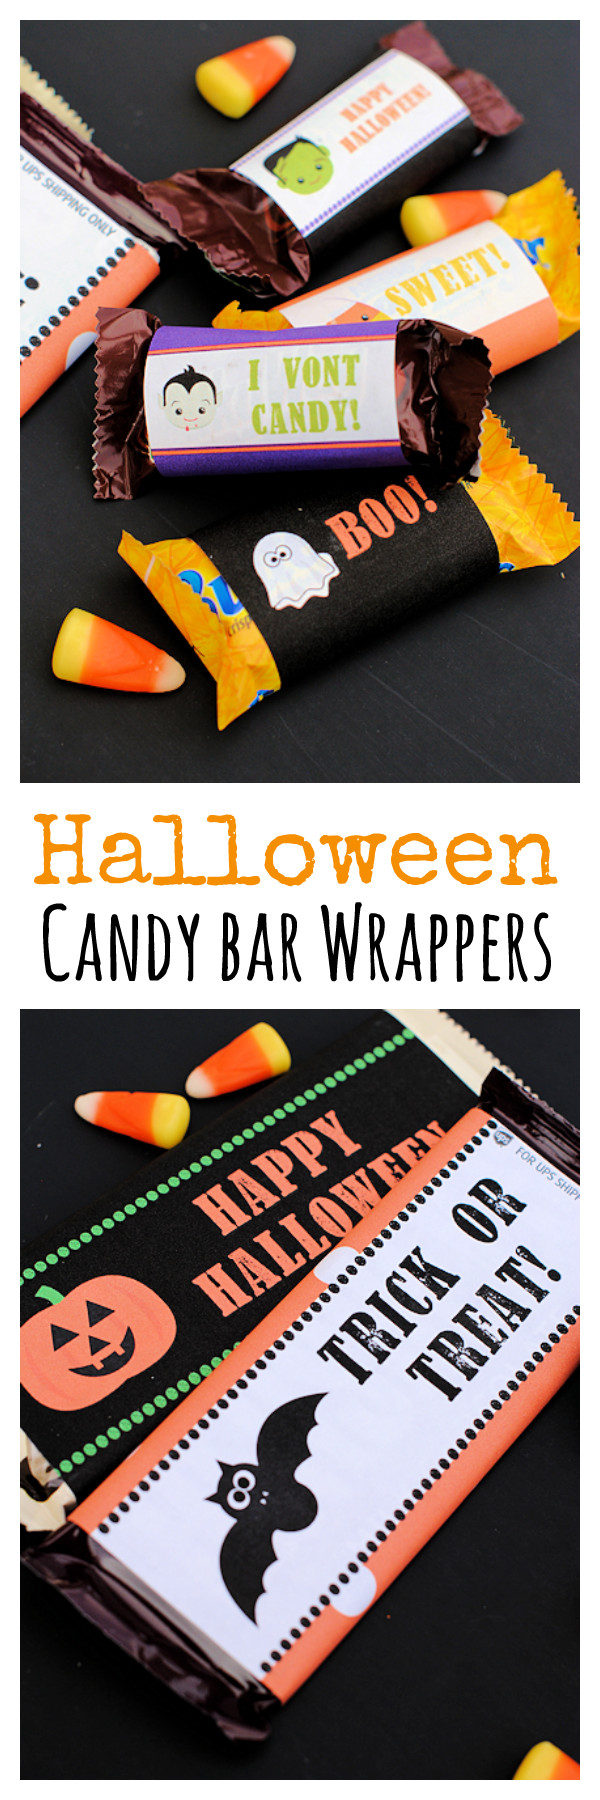 Printable Candy Bar Wrappers Free Printable Halloween Candy Bar Wrappers Crazy Little